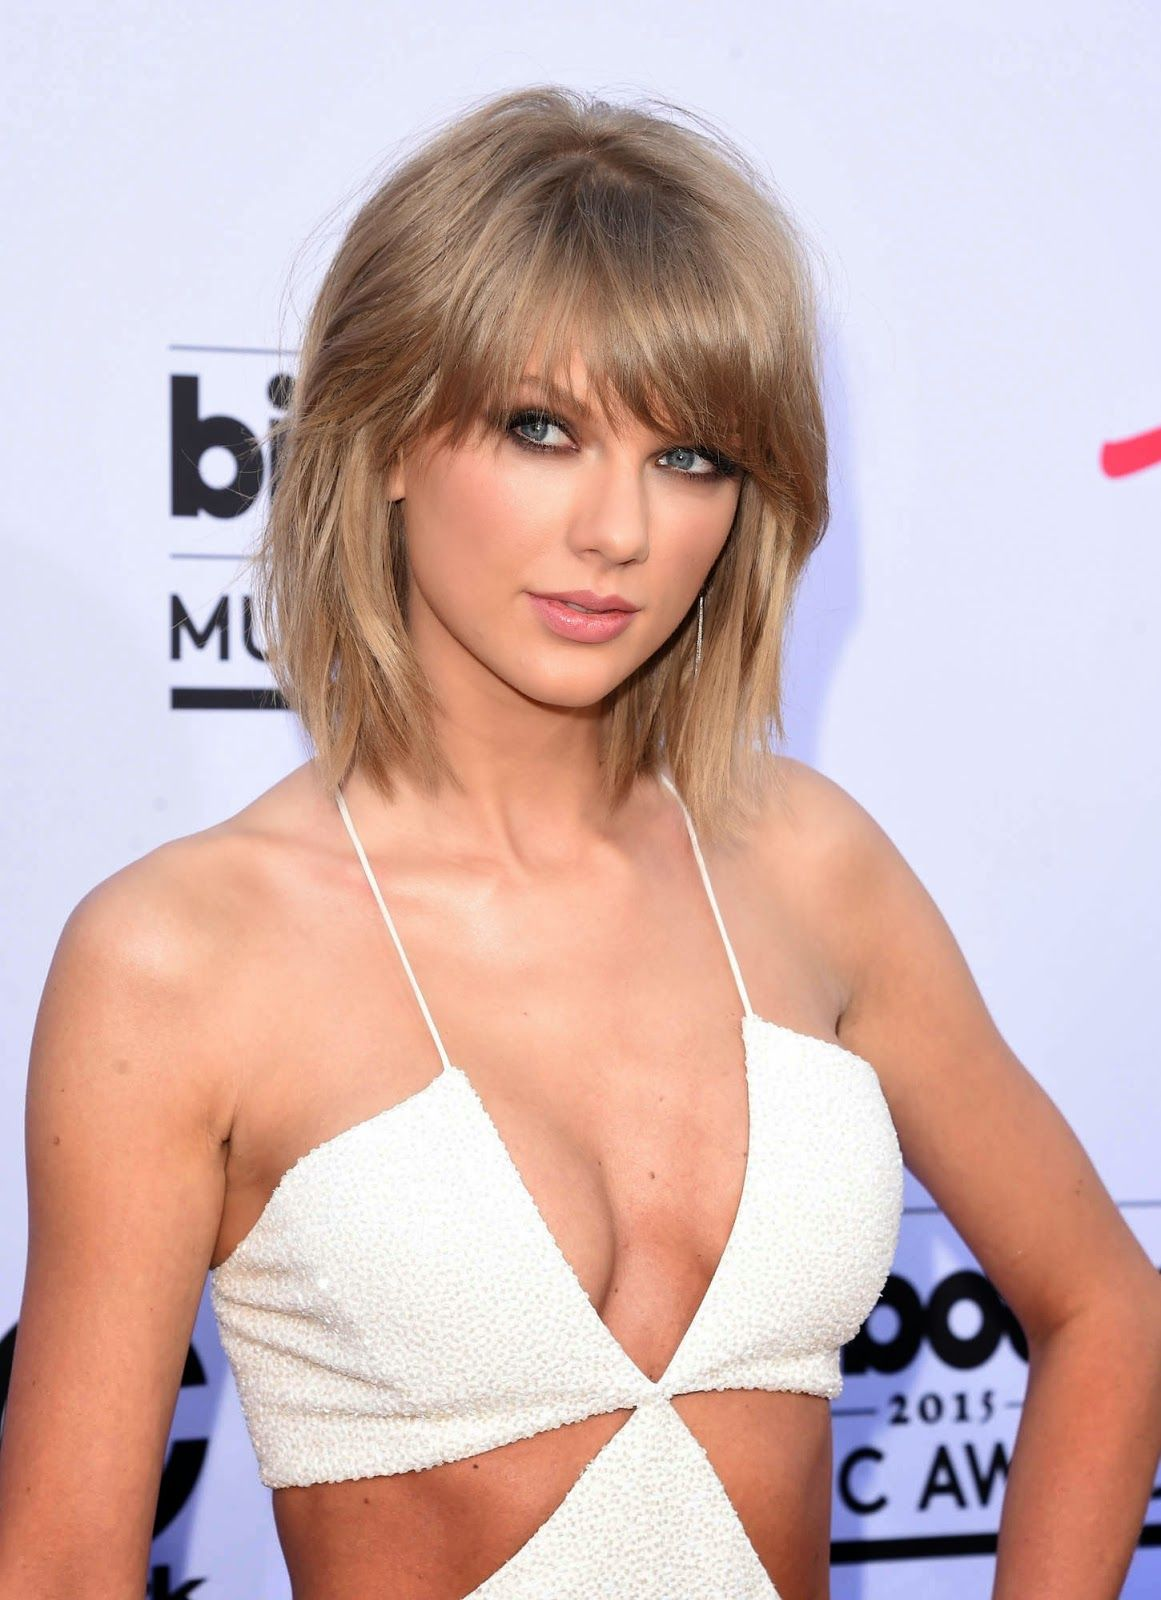 Taylor Swift Cleavage